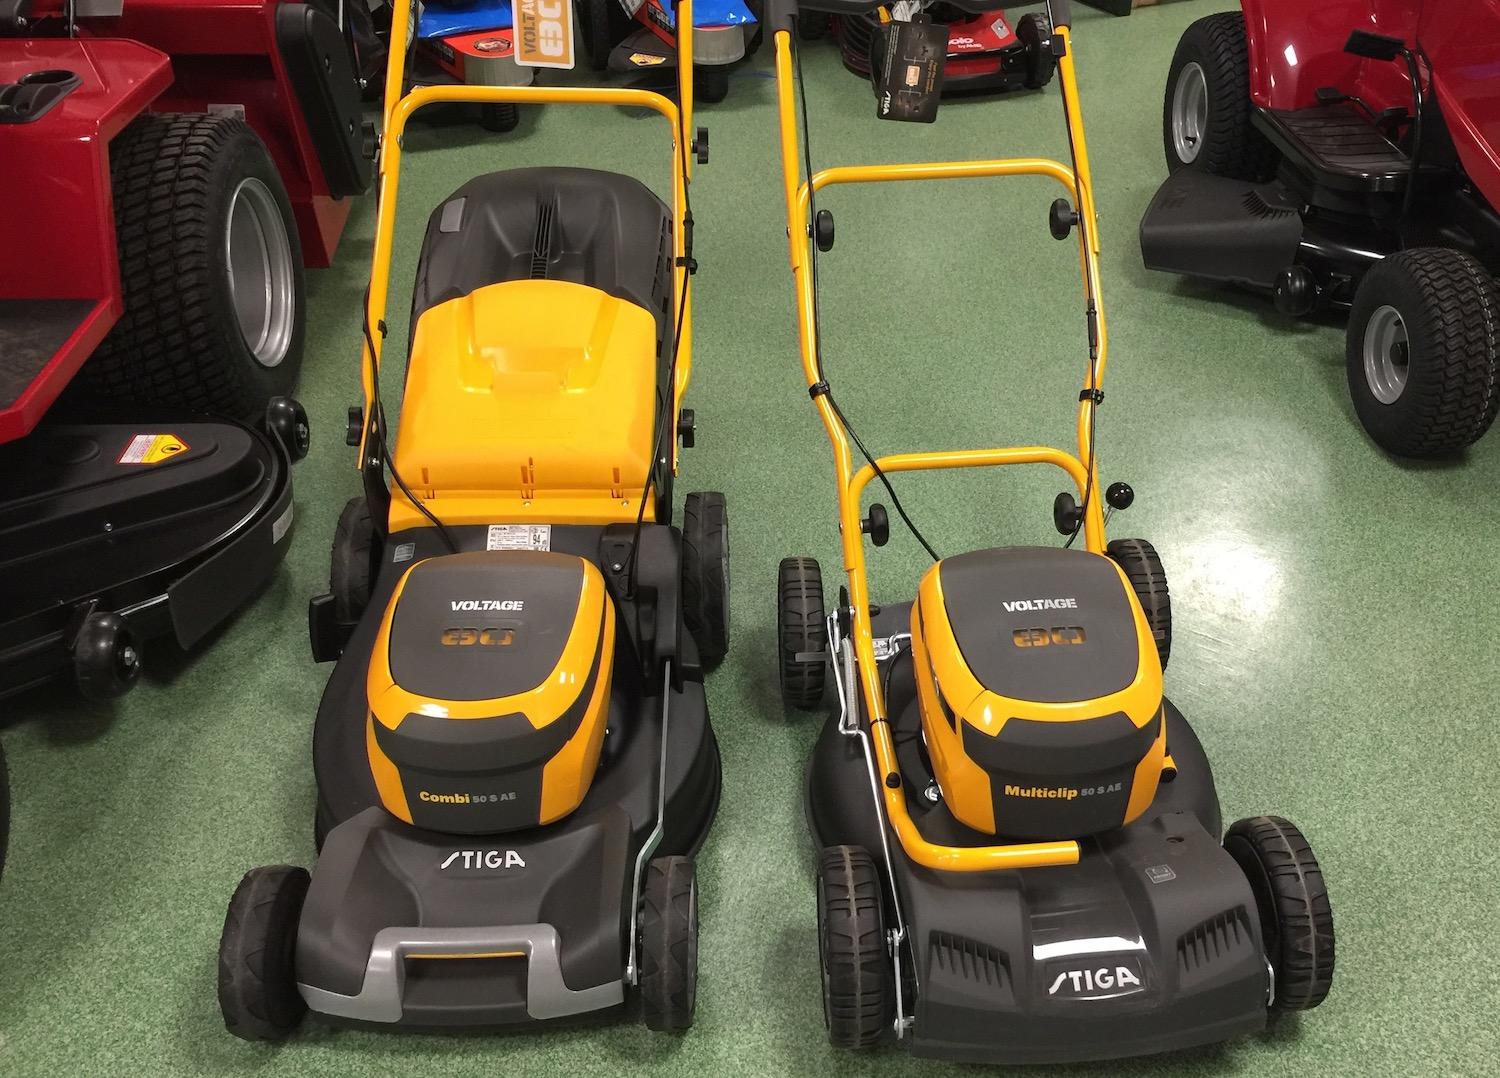 pp-estates-battery-lawnmowers